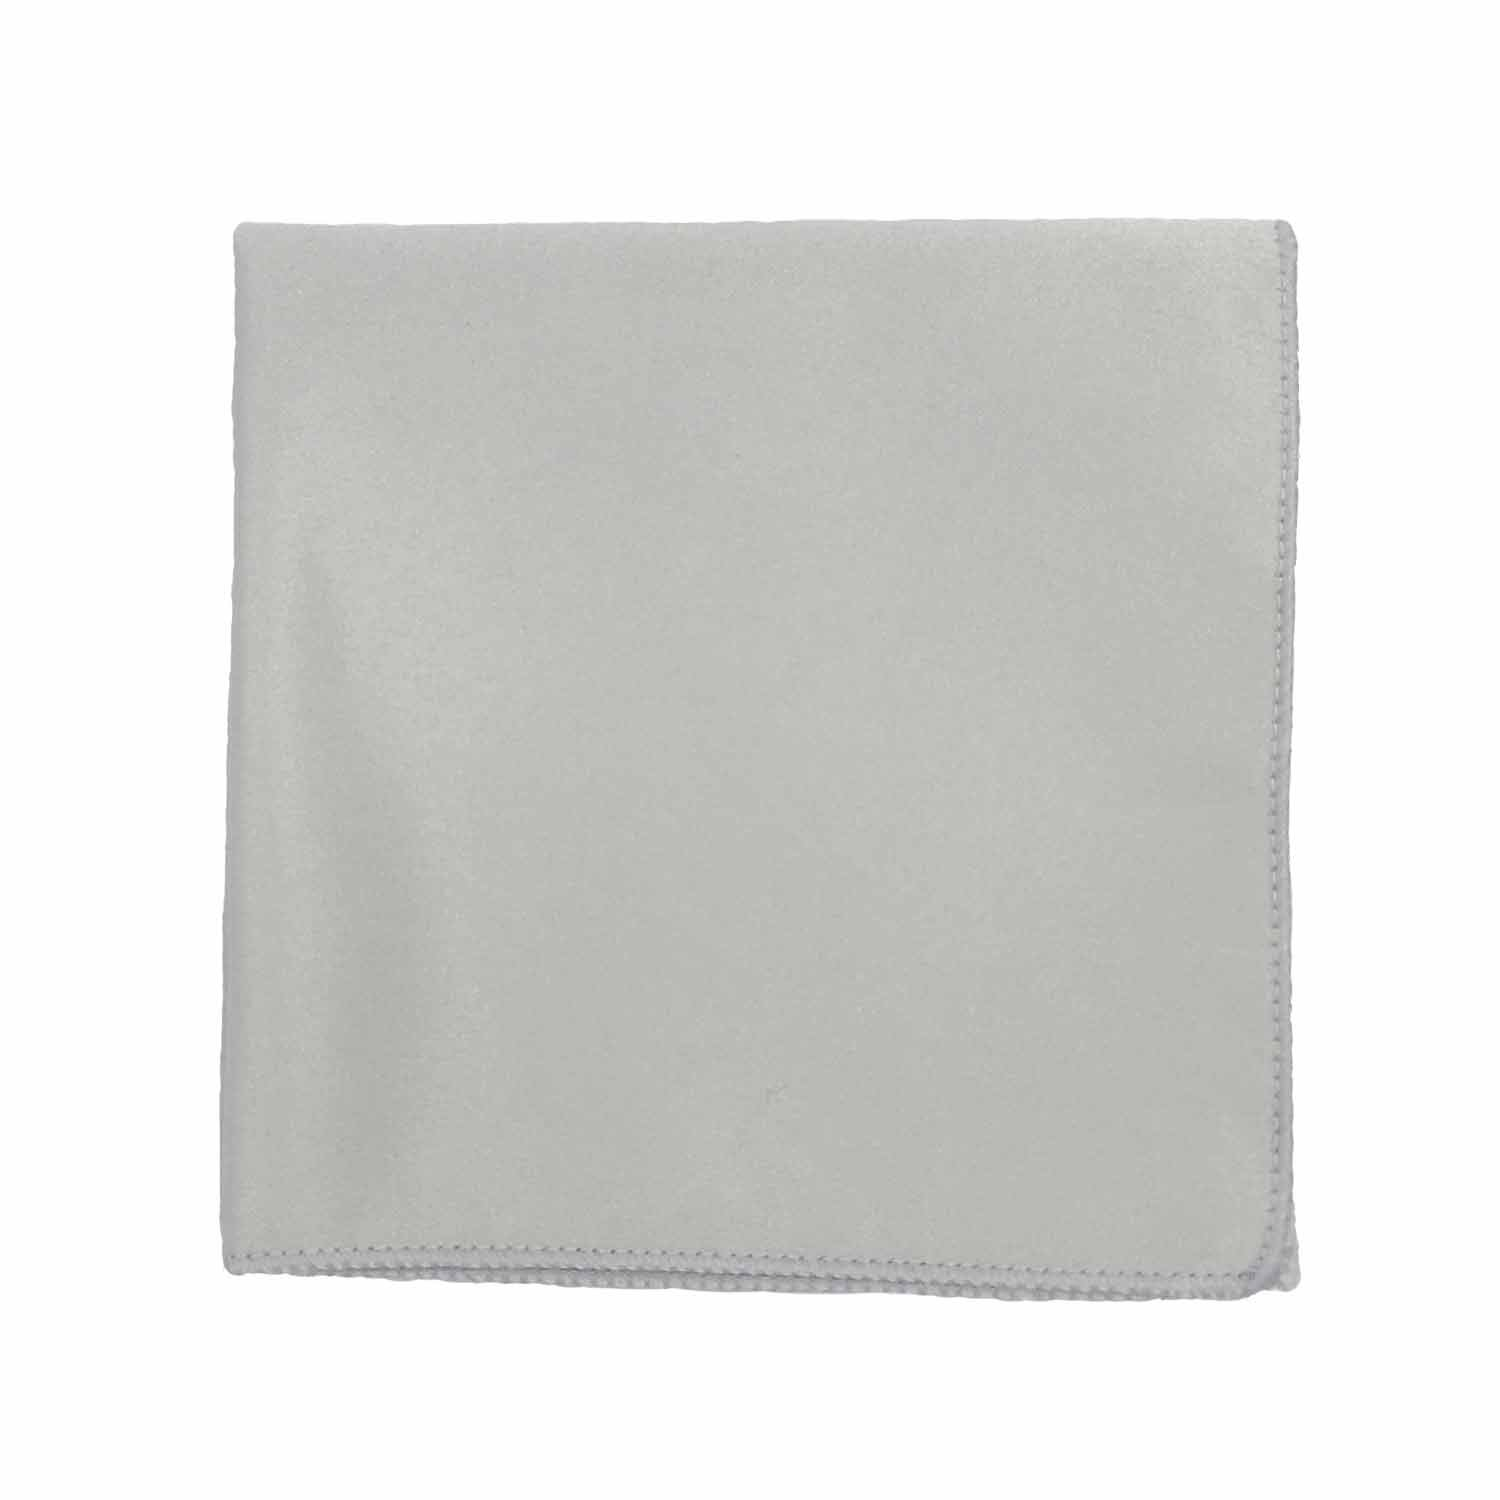 Spencer J's Satin Pocket Squares Handkerchief Boys and Mens (Light Silver)